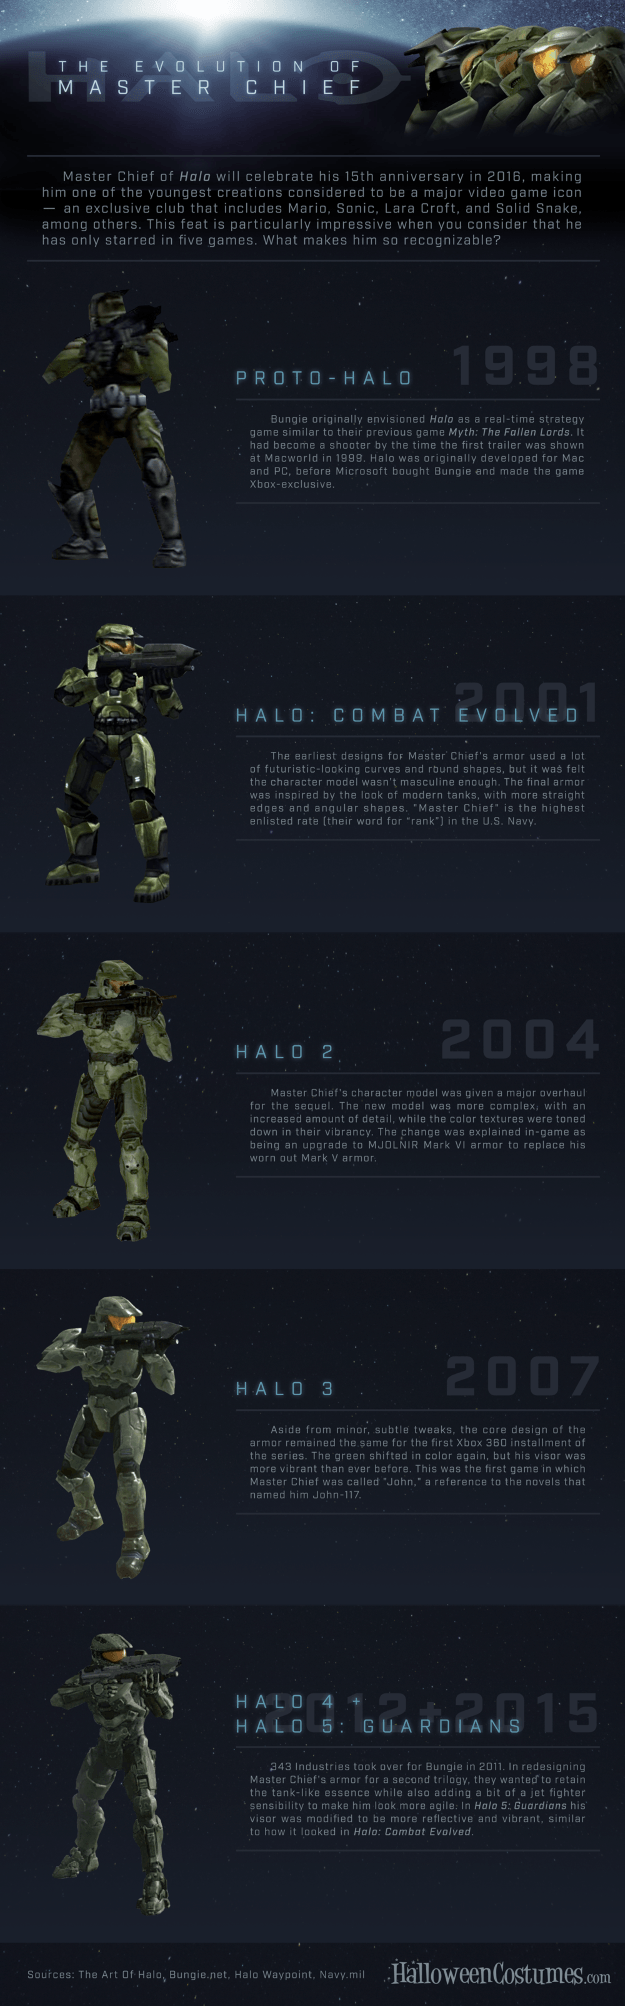 Halo-Master-Chief-Evolution-Infographic.png